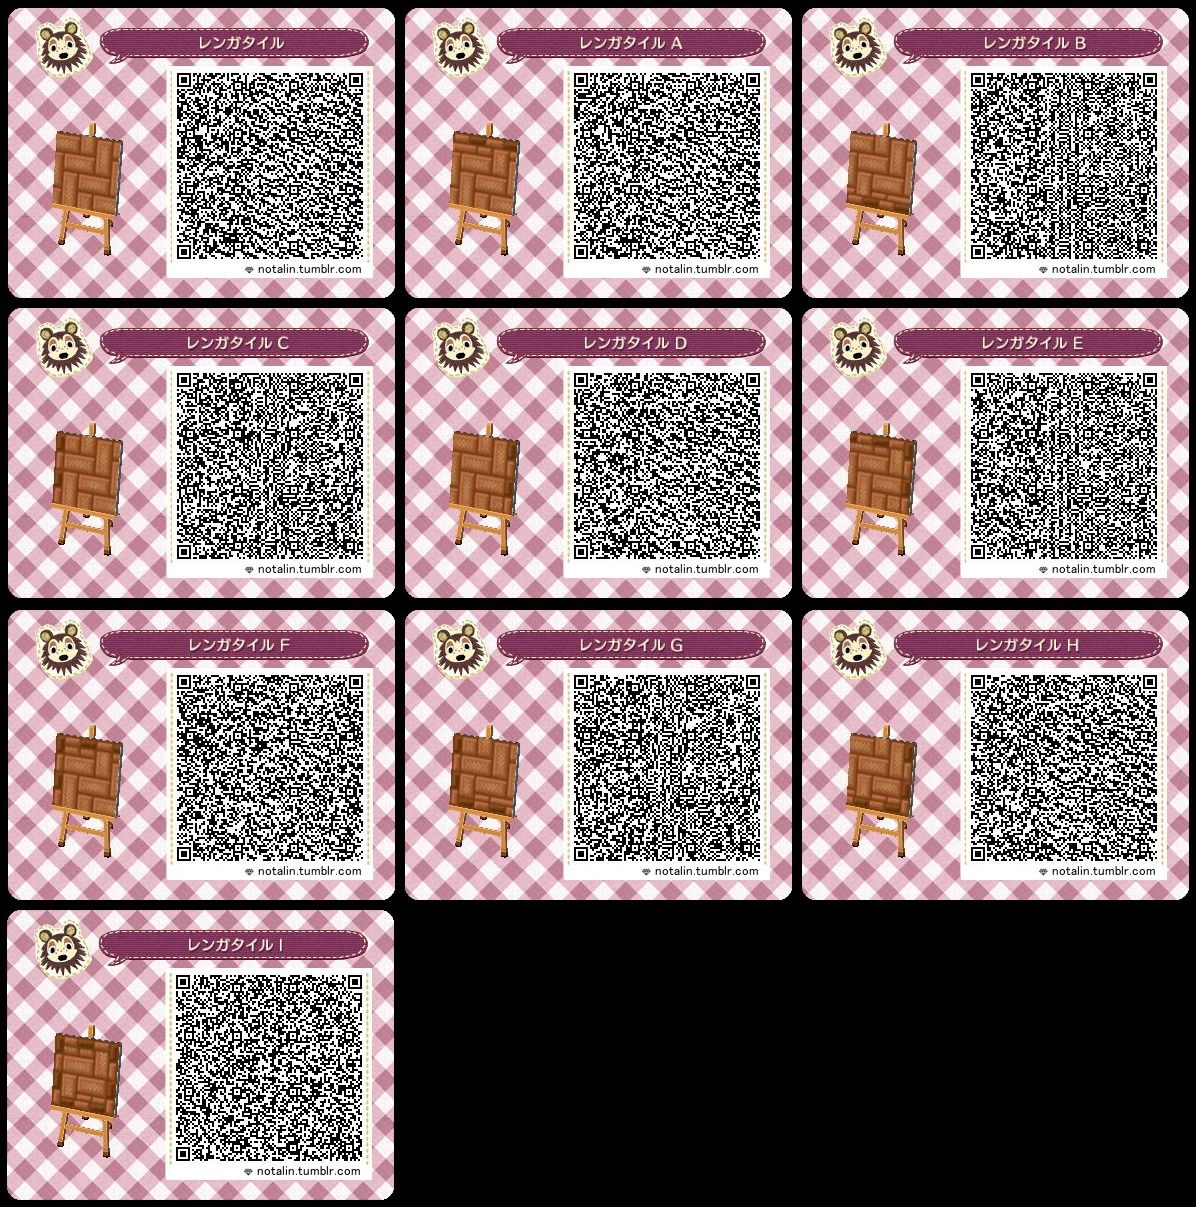 Animal Crossing New Leaf Qr Code Paths Pattern Notalin 品名